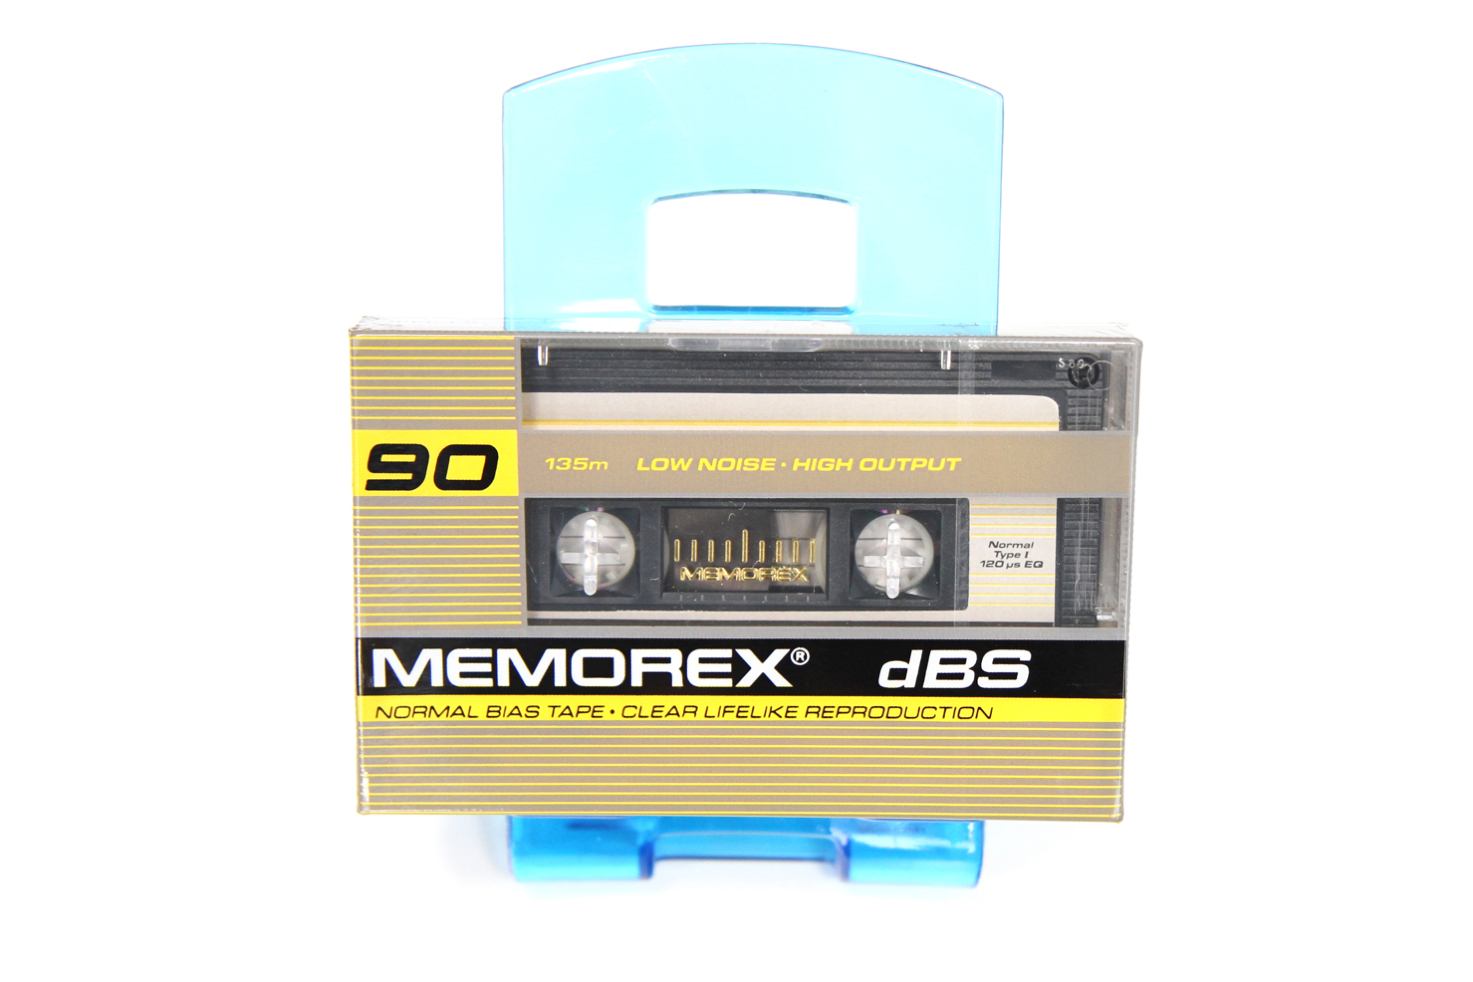 MEMOREX DBS-90 Position Normal